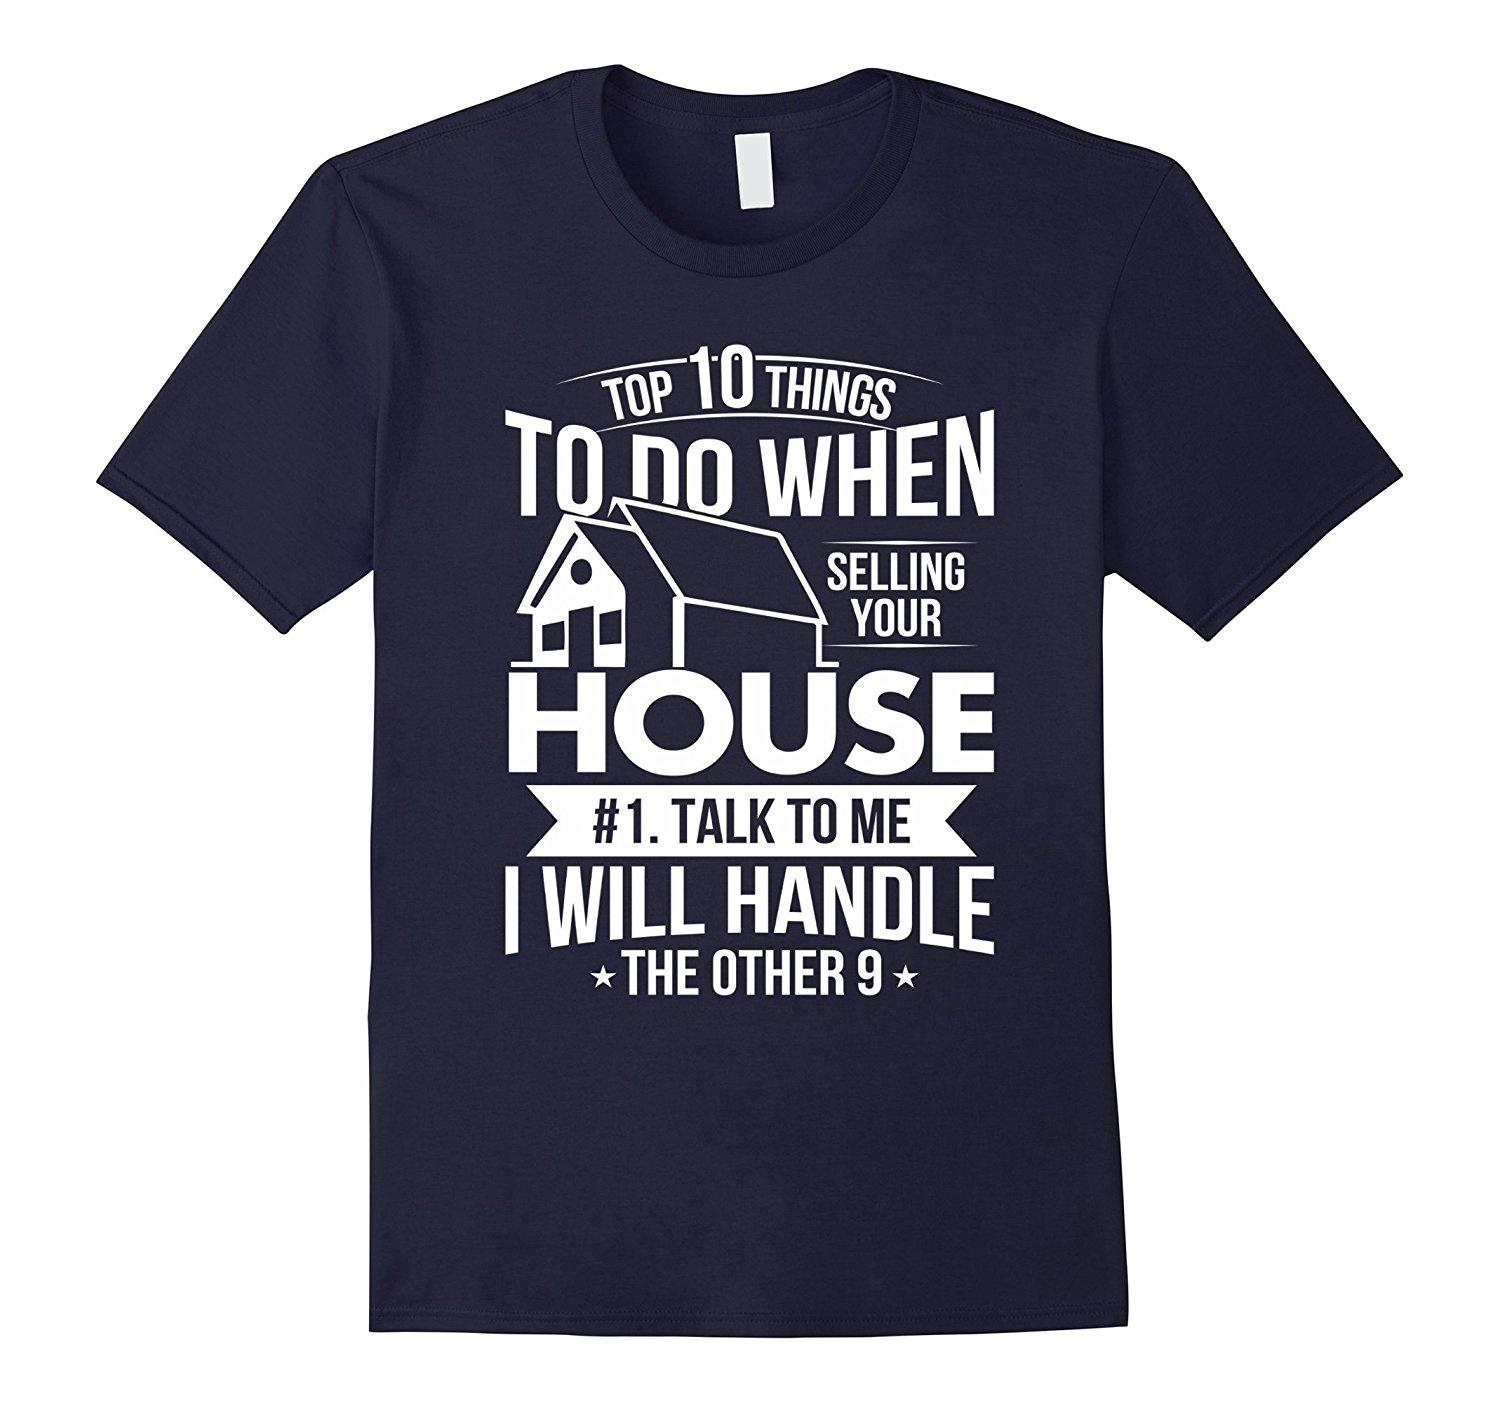 c348eec7f0 Real Estate Agent Gift Selling Your House T-Shirt Men Cotton T-shirt